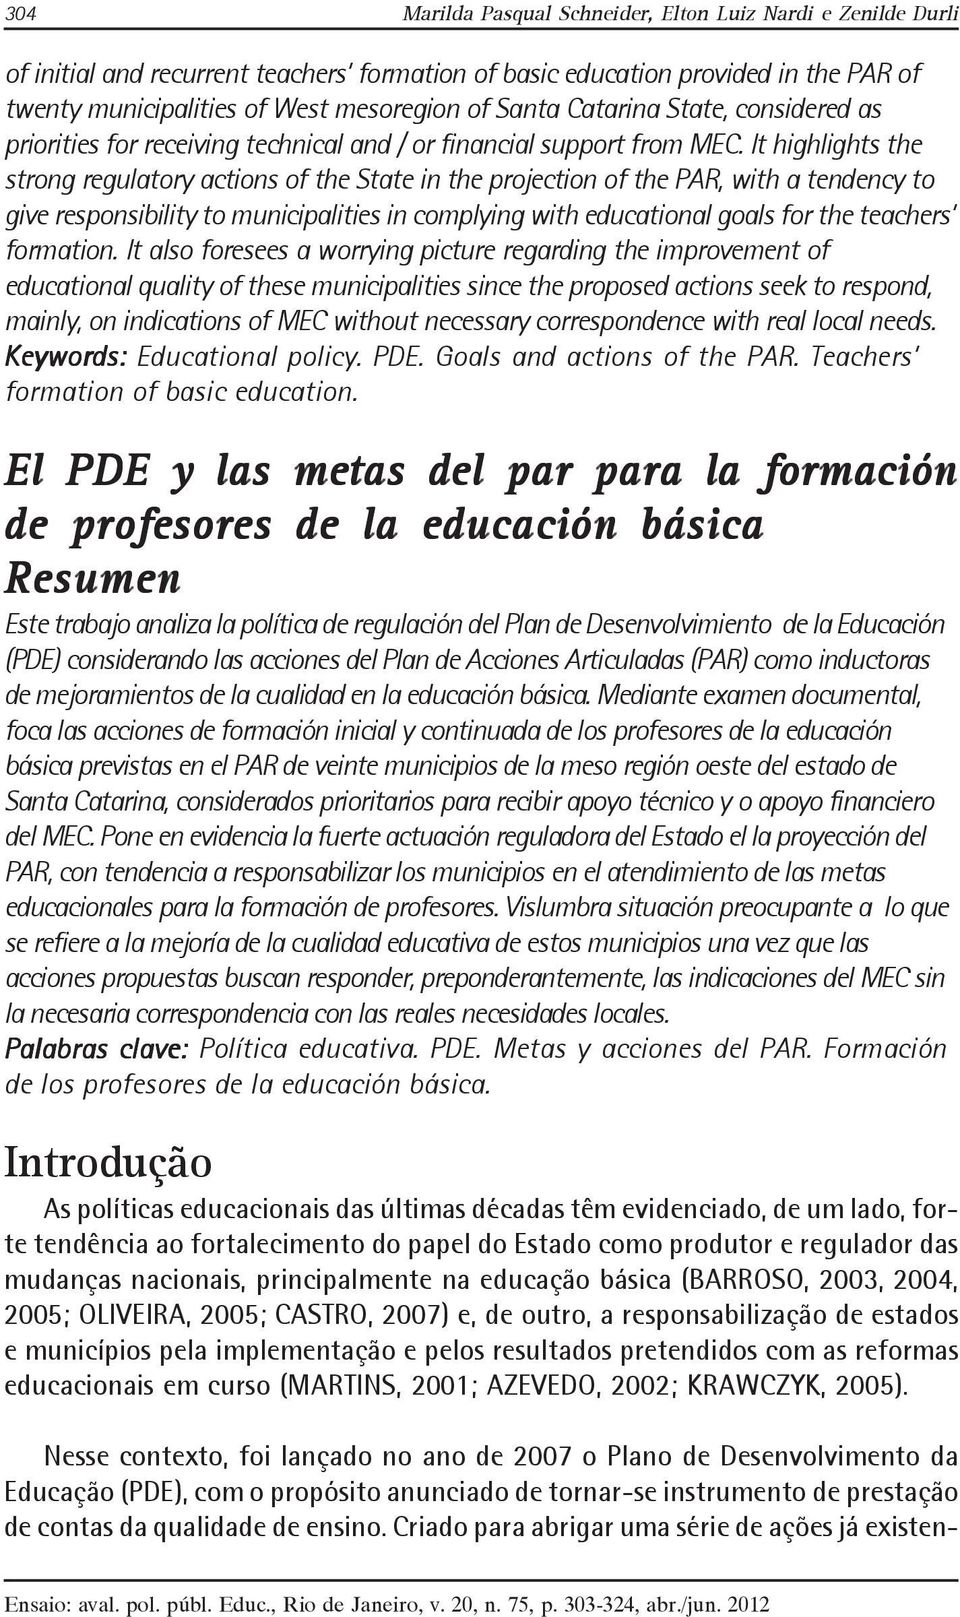 It highlights the strong regulatory actions of the State in the projection of the PAR, with a tendency to give responsibility to municipalities in complying with educational goals for the teachers